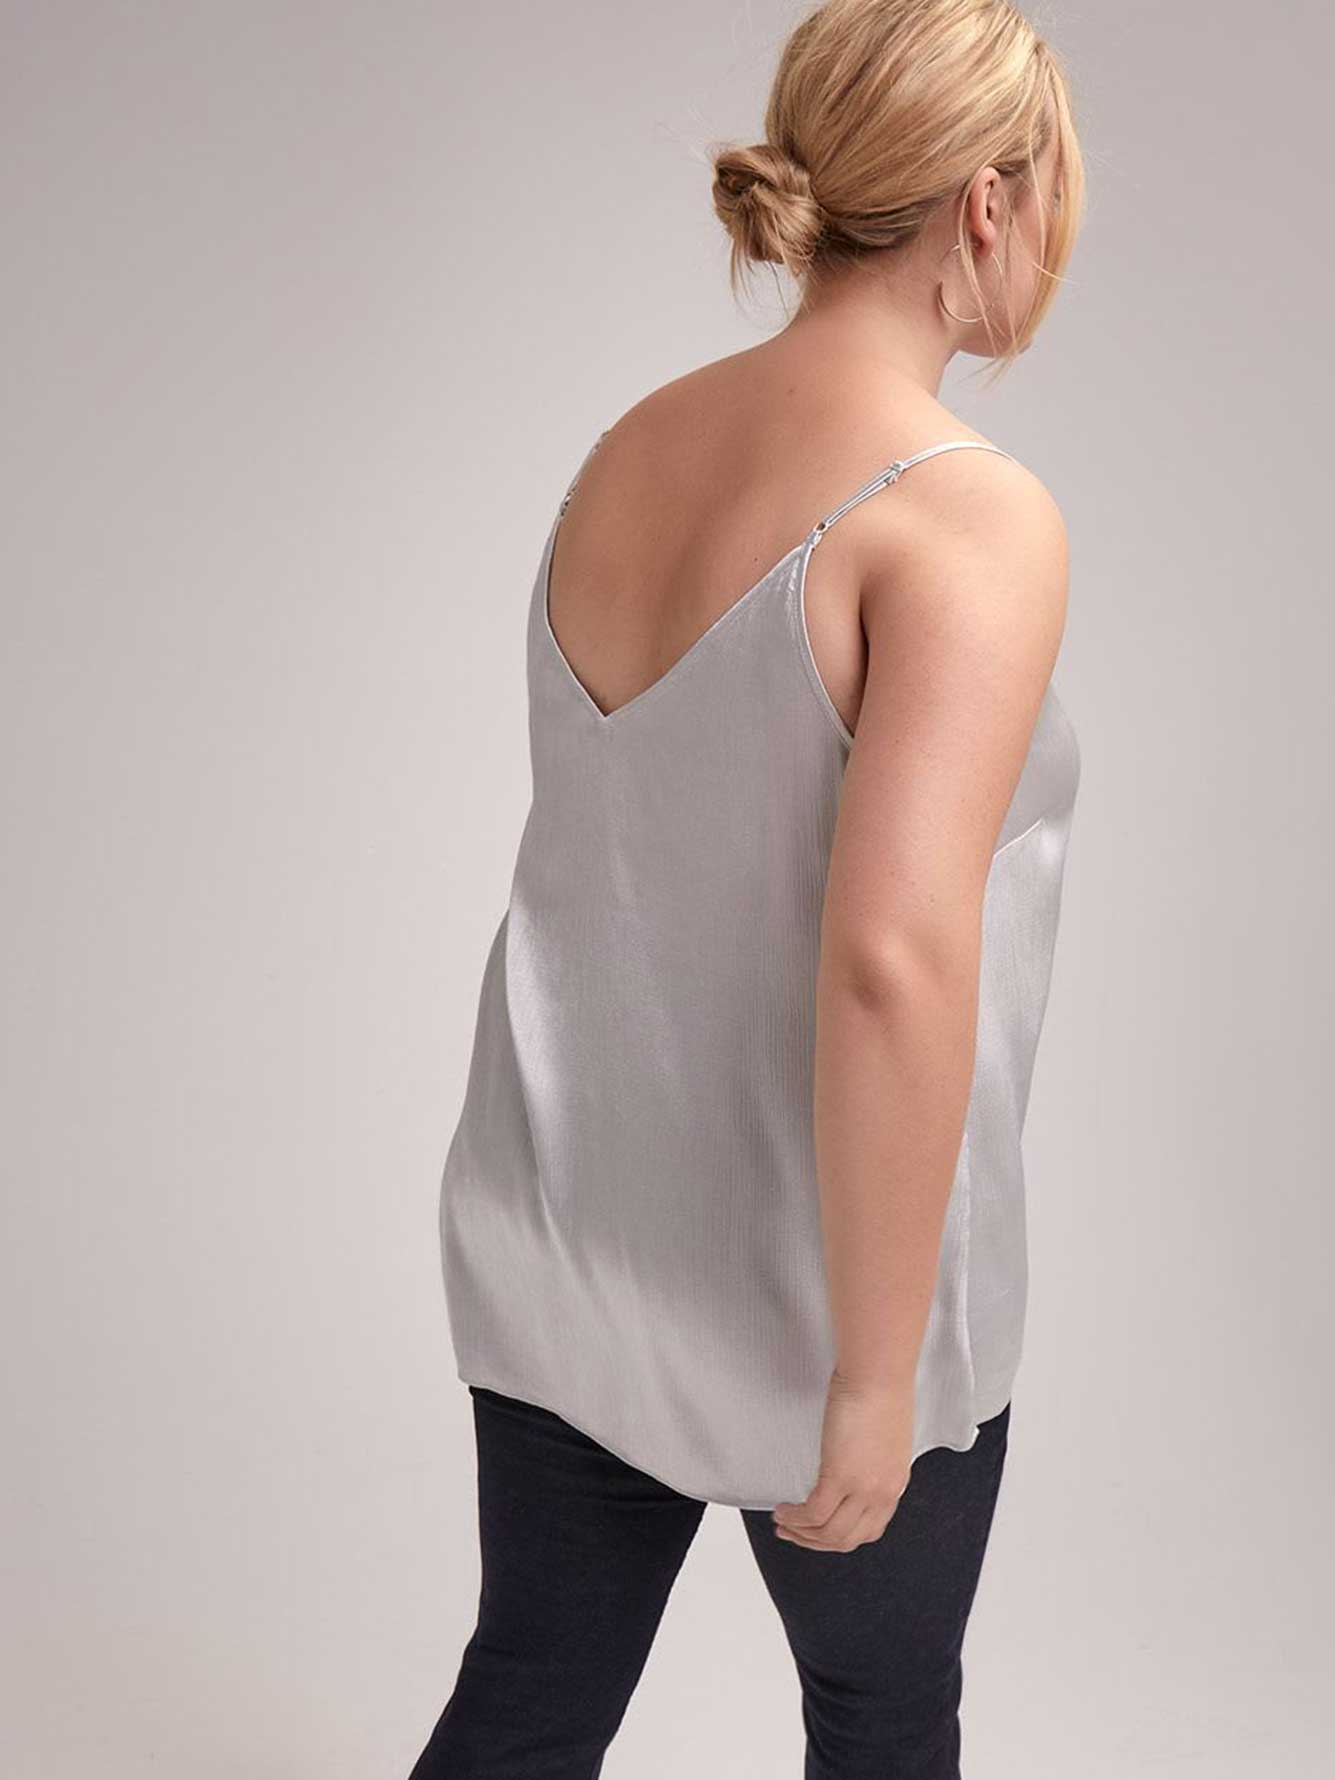 Adjustable Cami with Lace Trims - Michel Studio